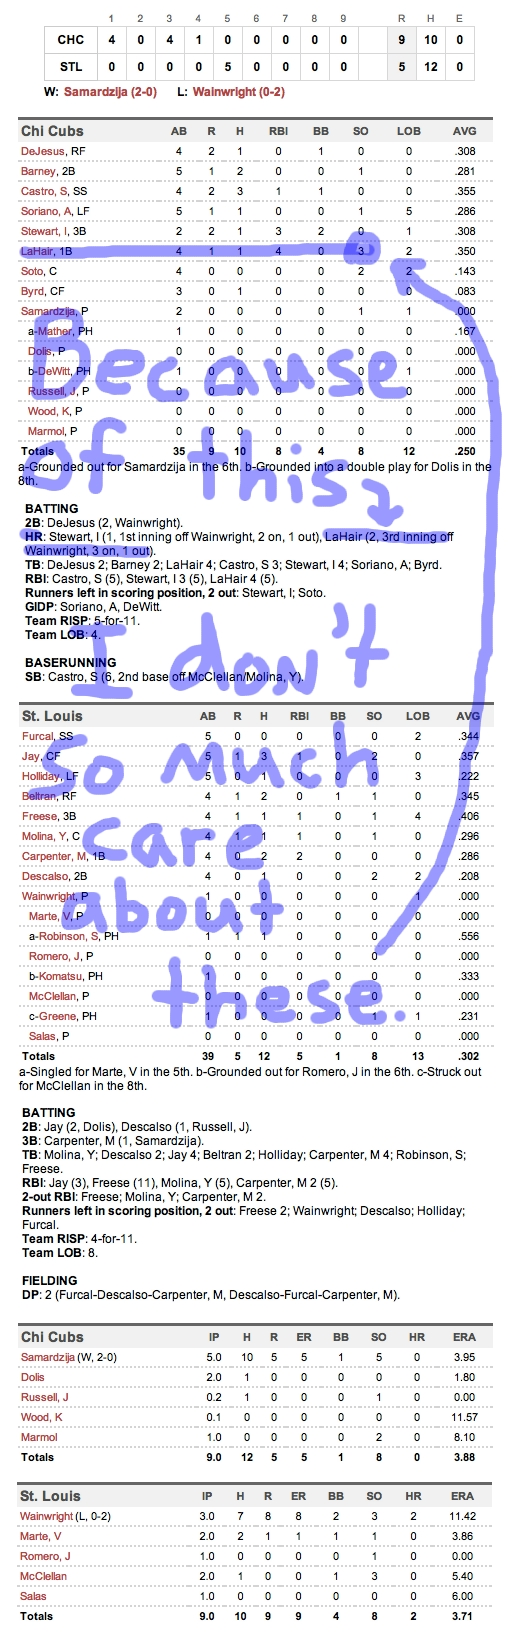 Enhanced Box Score: Cubs 9, Cardinals 5 – April 13, 2012